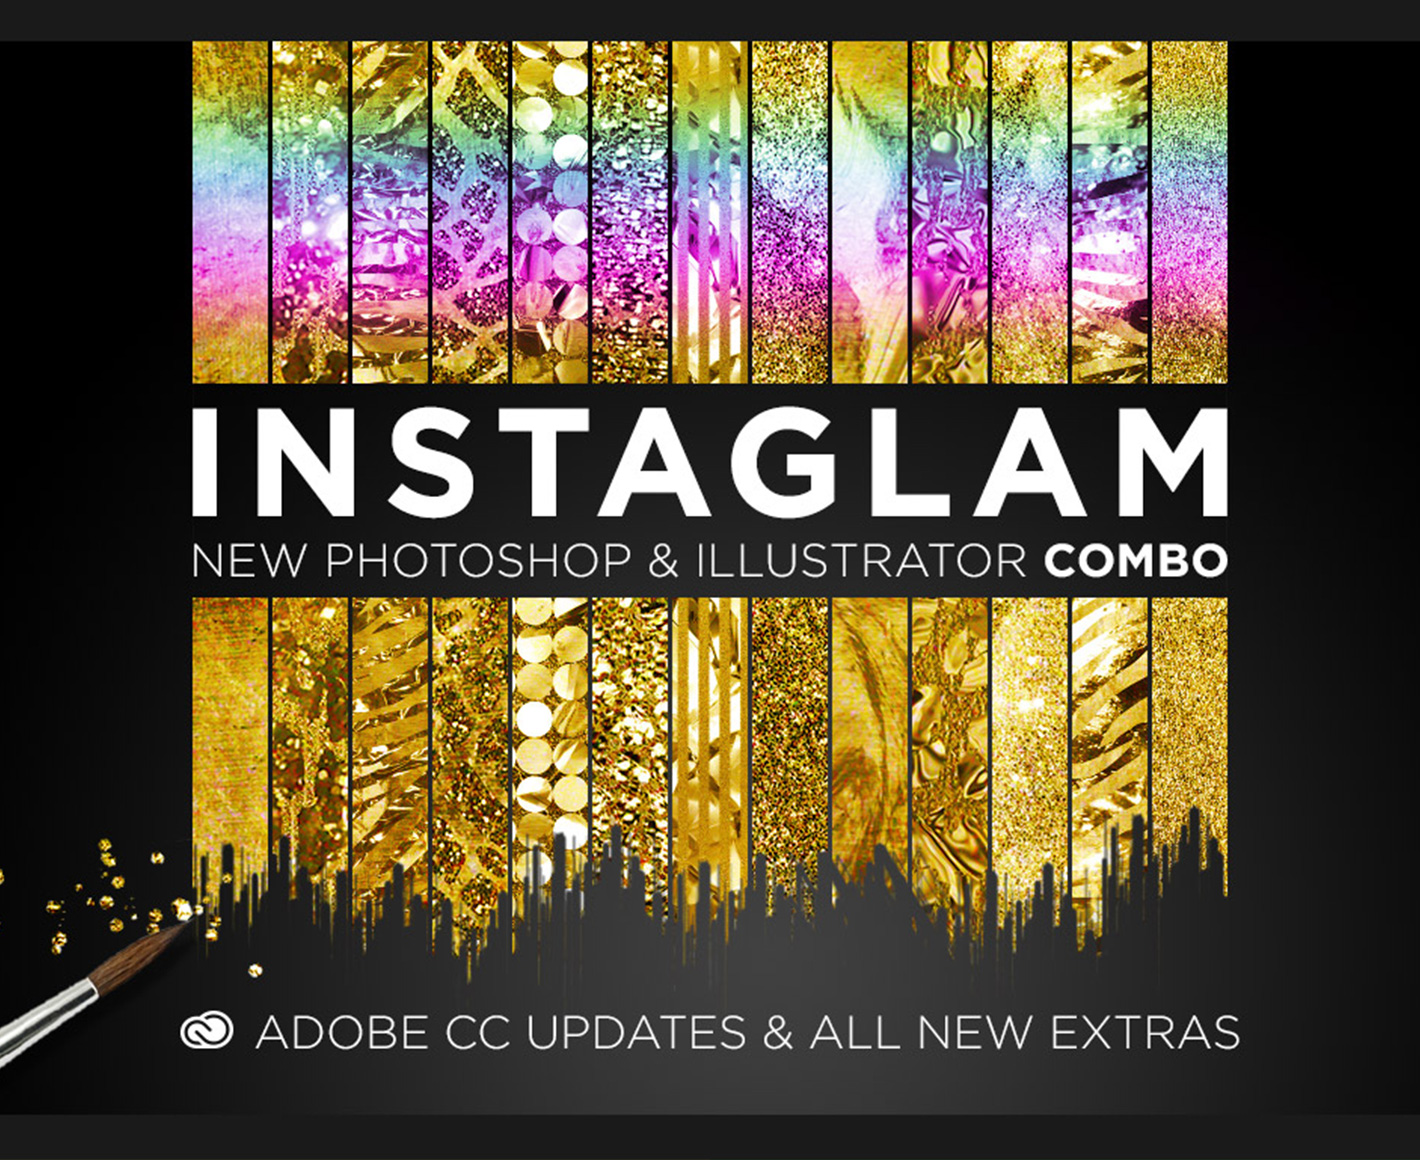 InstaGlam - Creative Cloud Combo (for Photoshop and Illustrator)